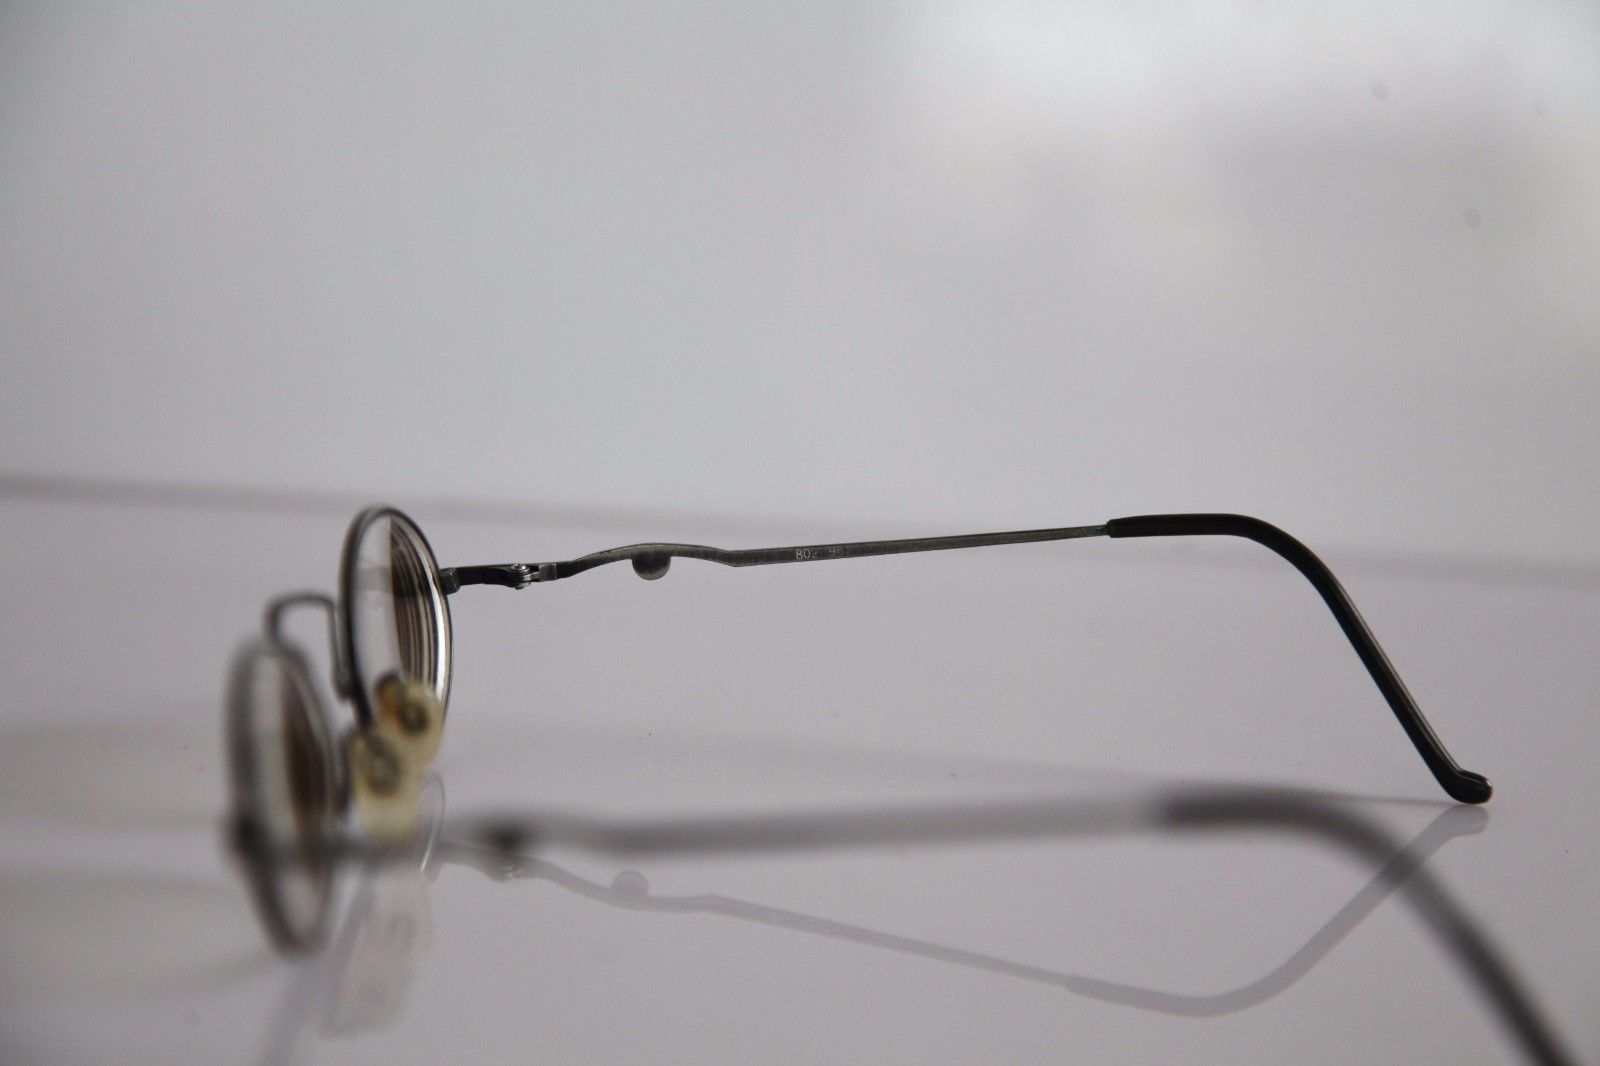 CLAUDIO P. Eyewear, Silver Frame, RX-Able Prescription lenses. Made in Italy image 7